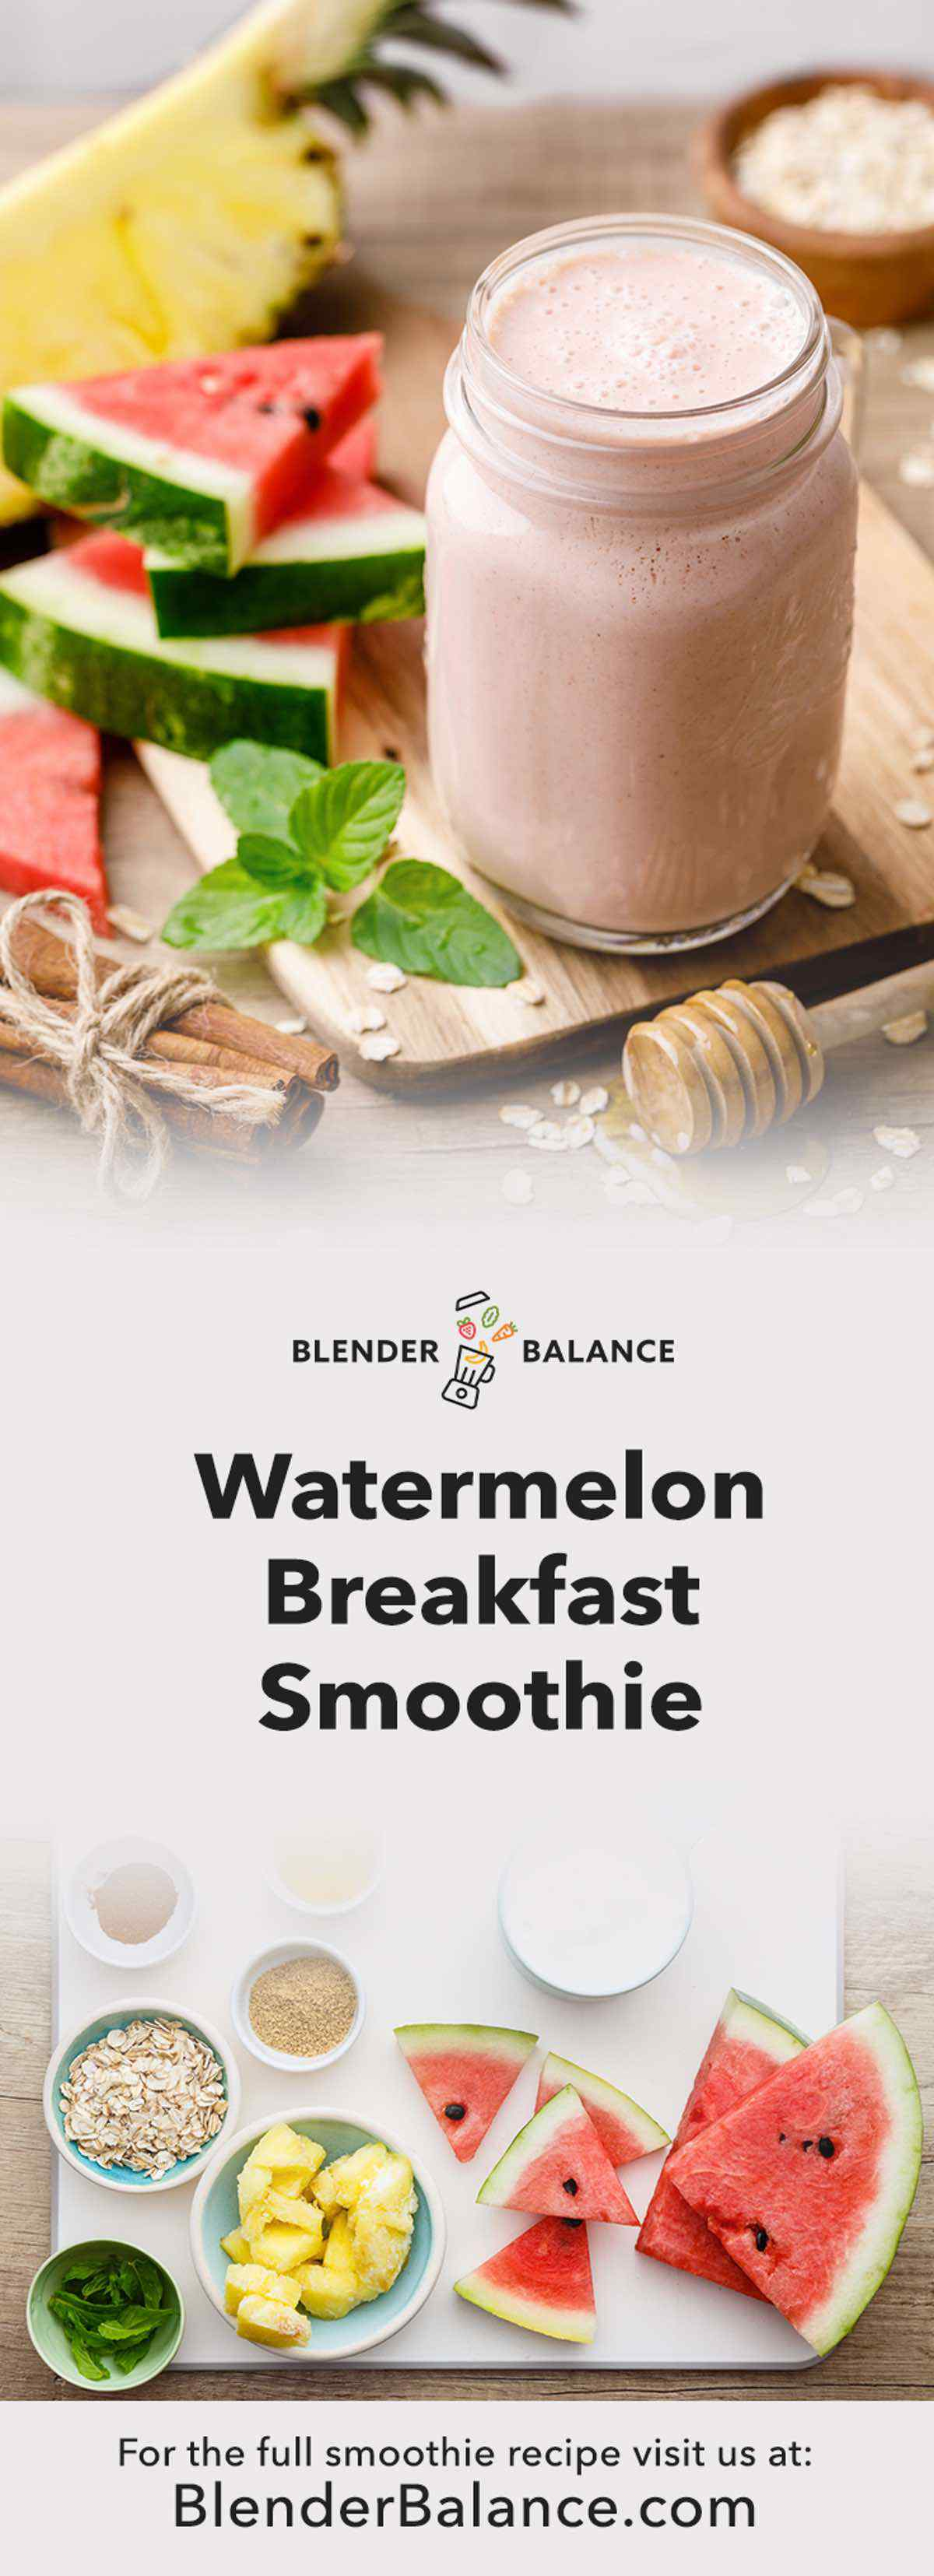 Watermelon Breakfast Smoothie